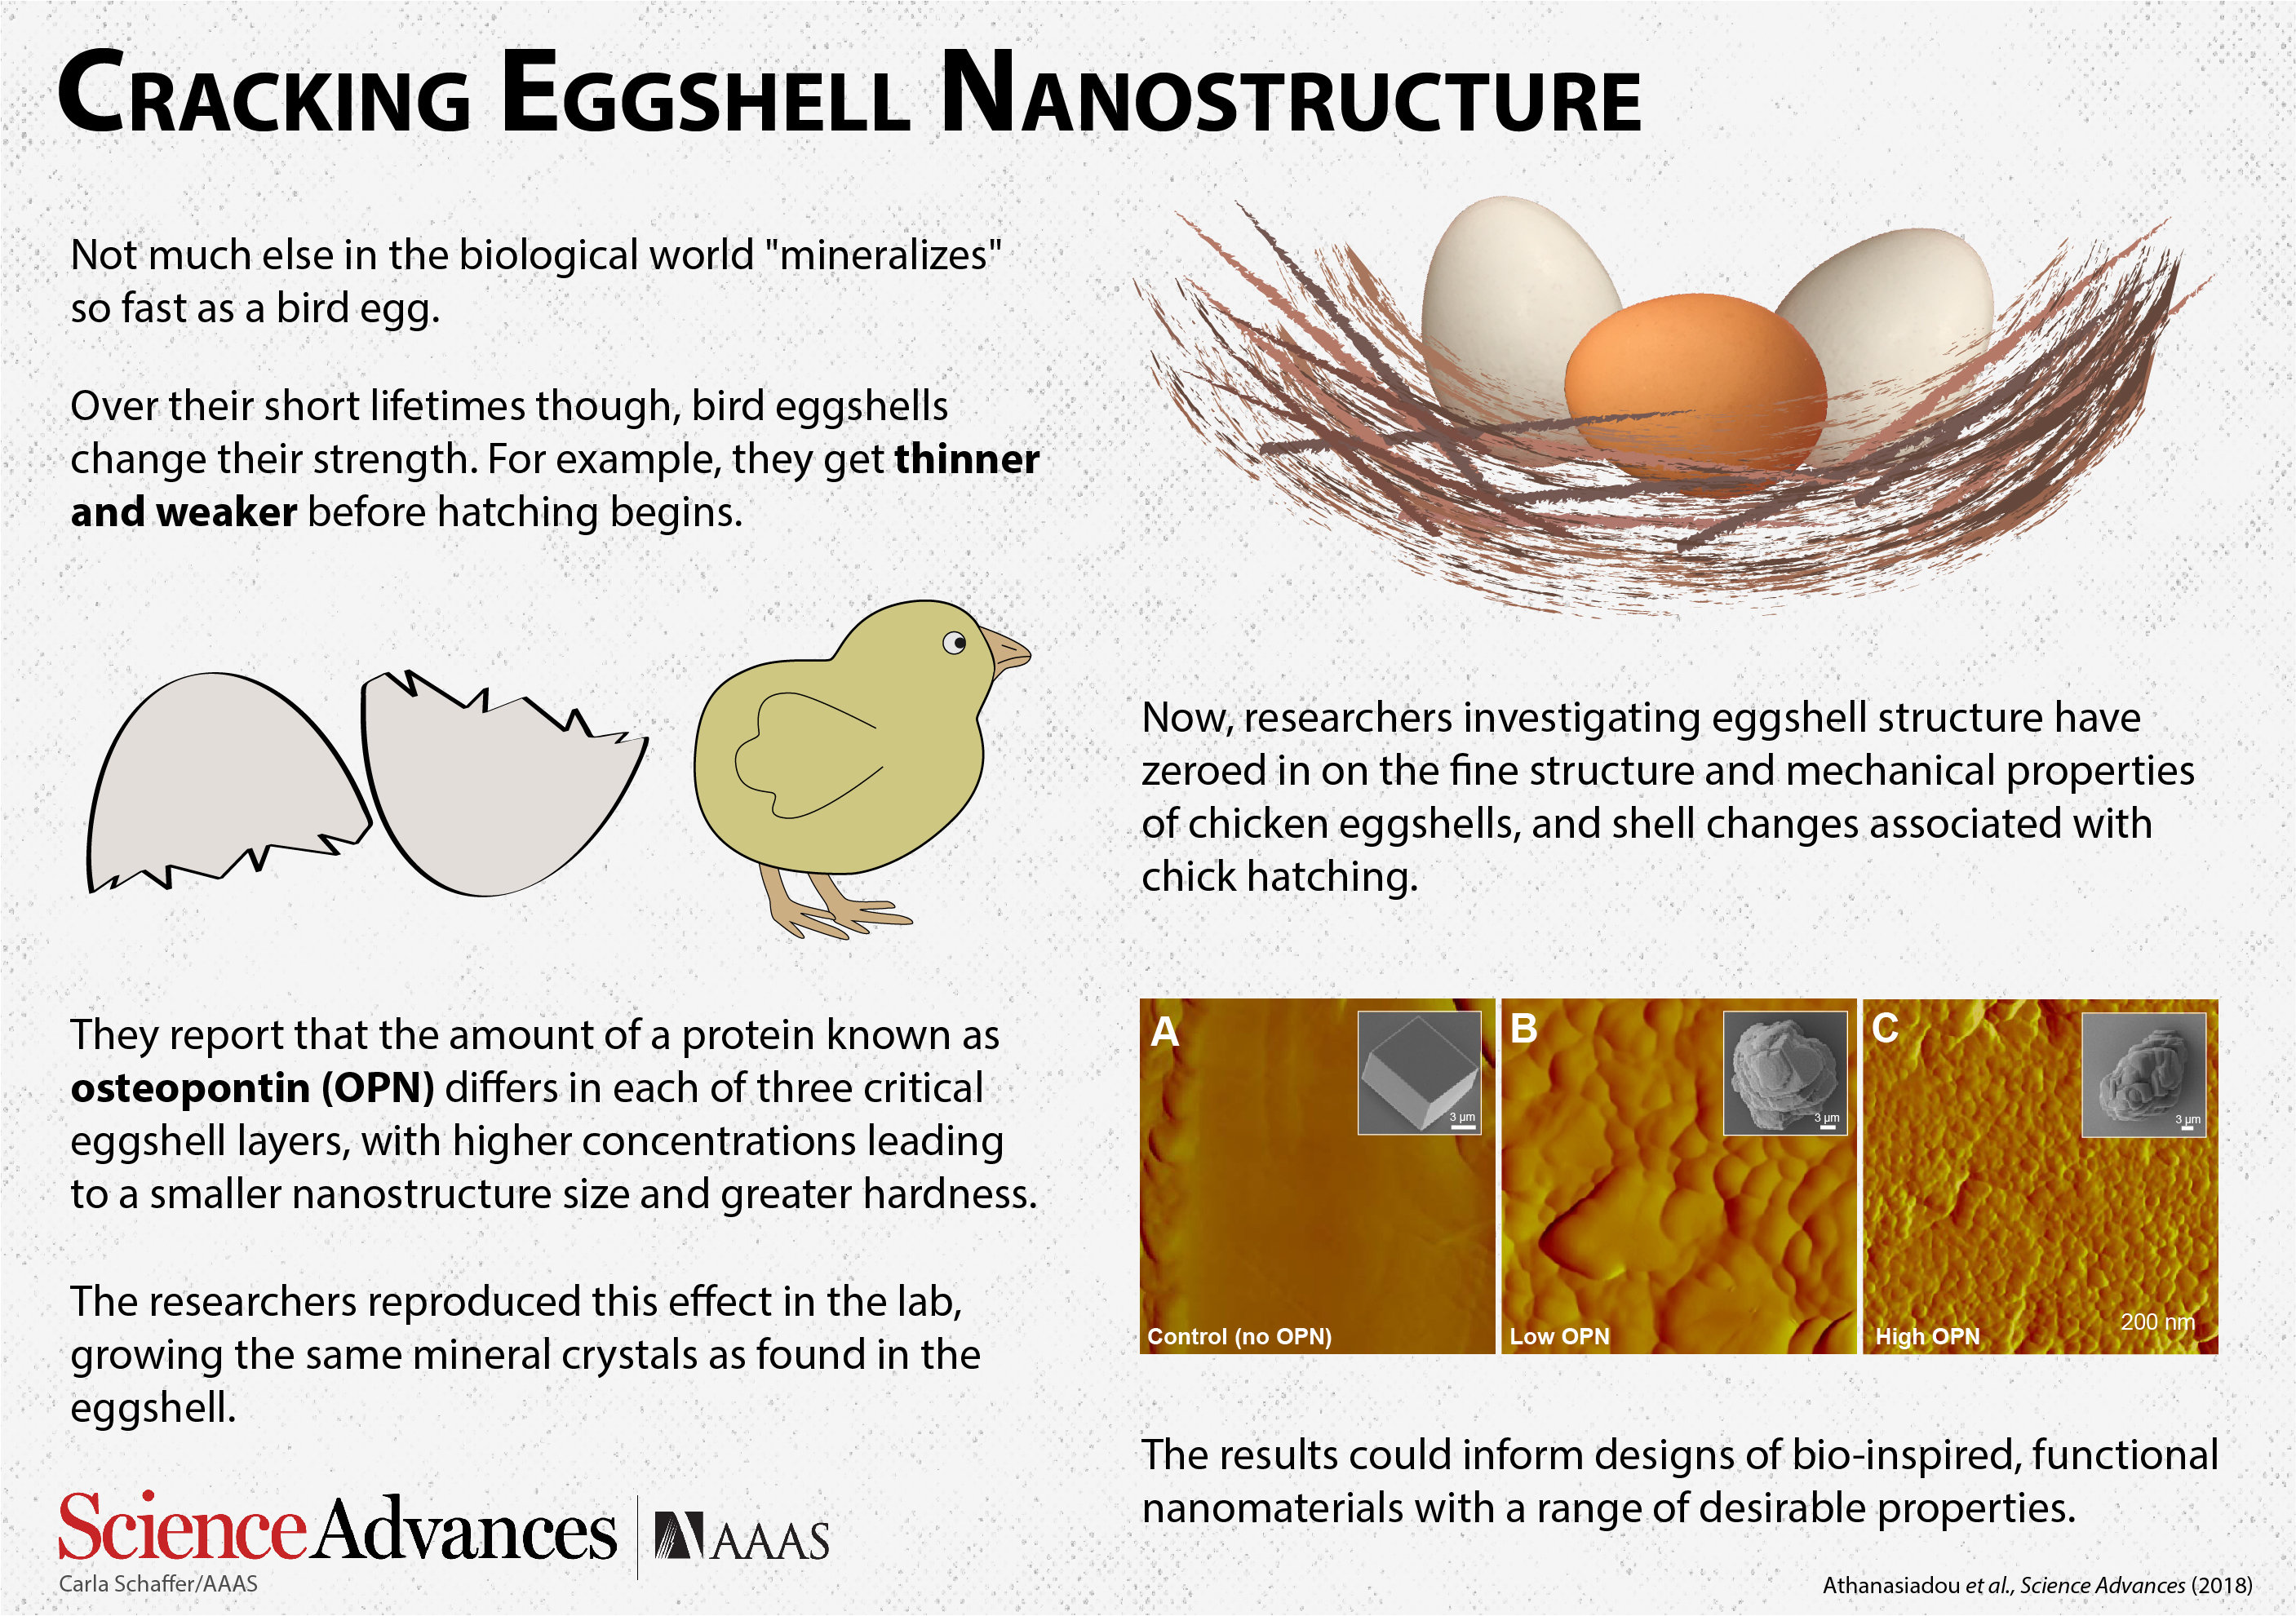 Cracking Eggshell Nanostructure New Discovery Could Have Important